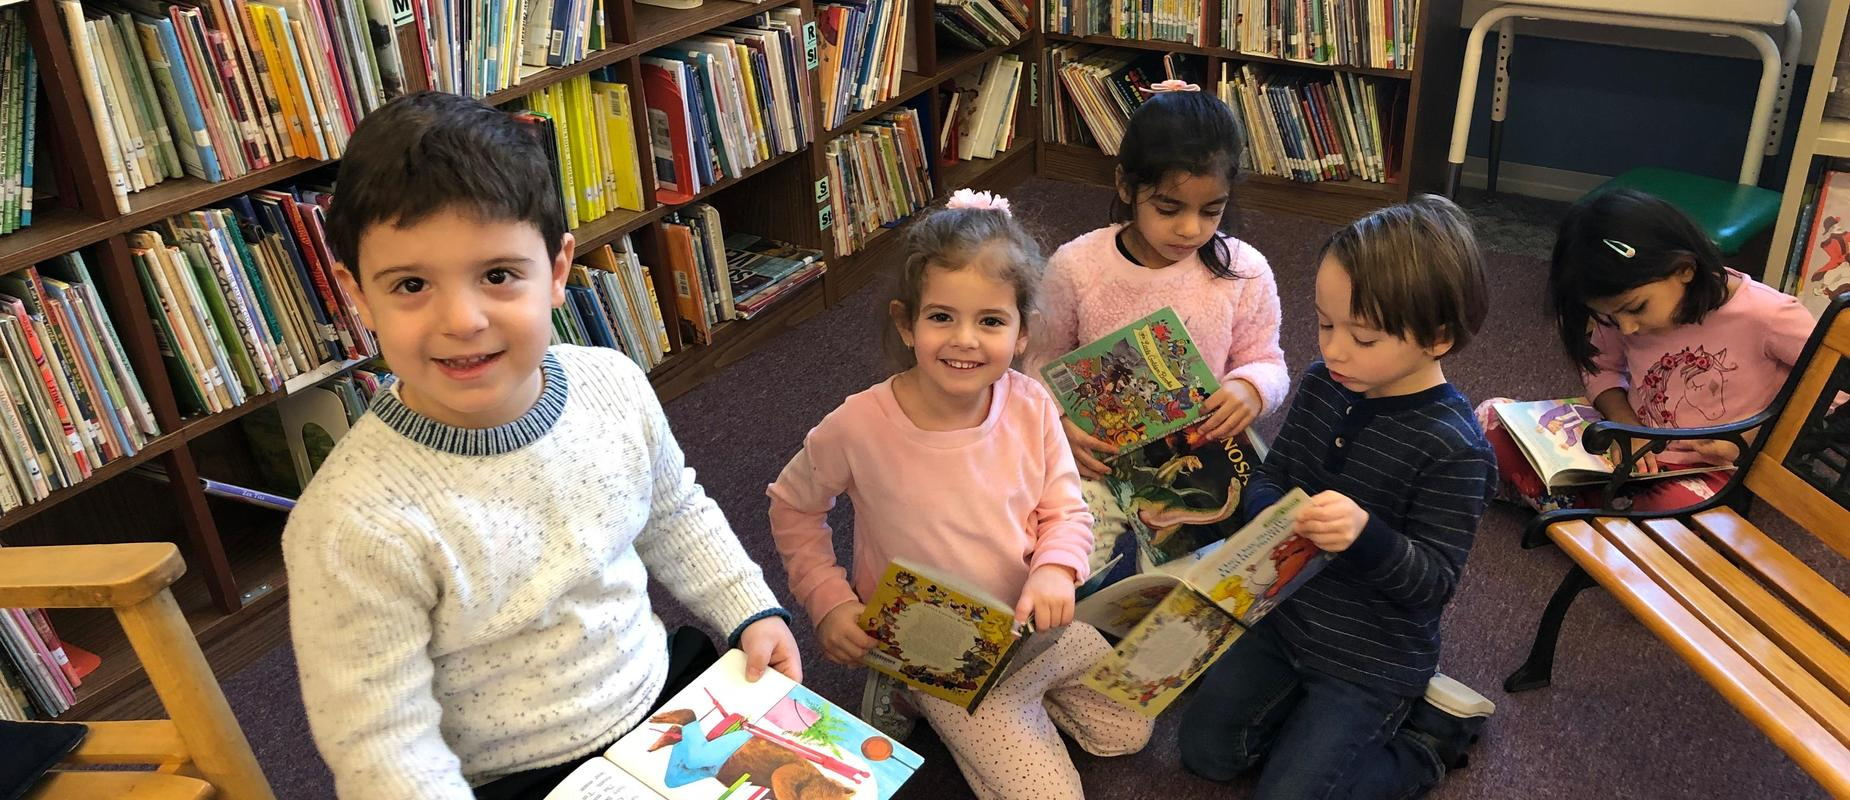 Upper School Library students reading